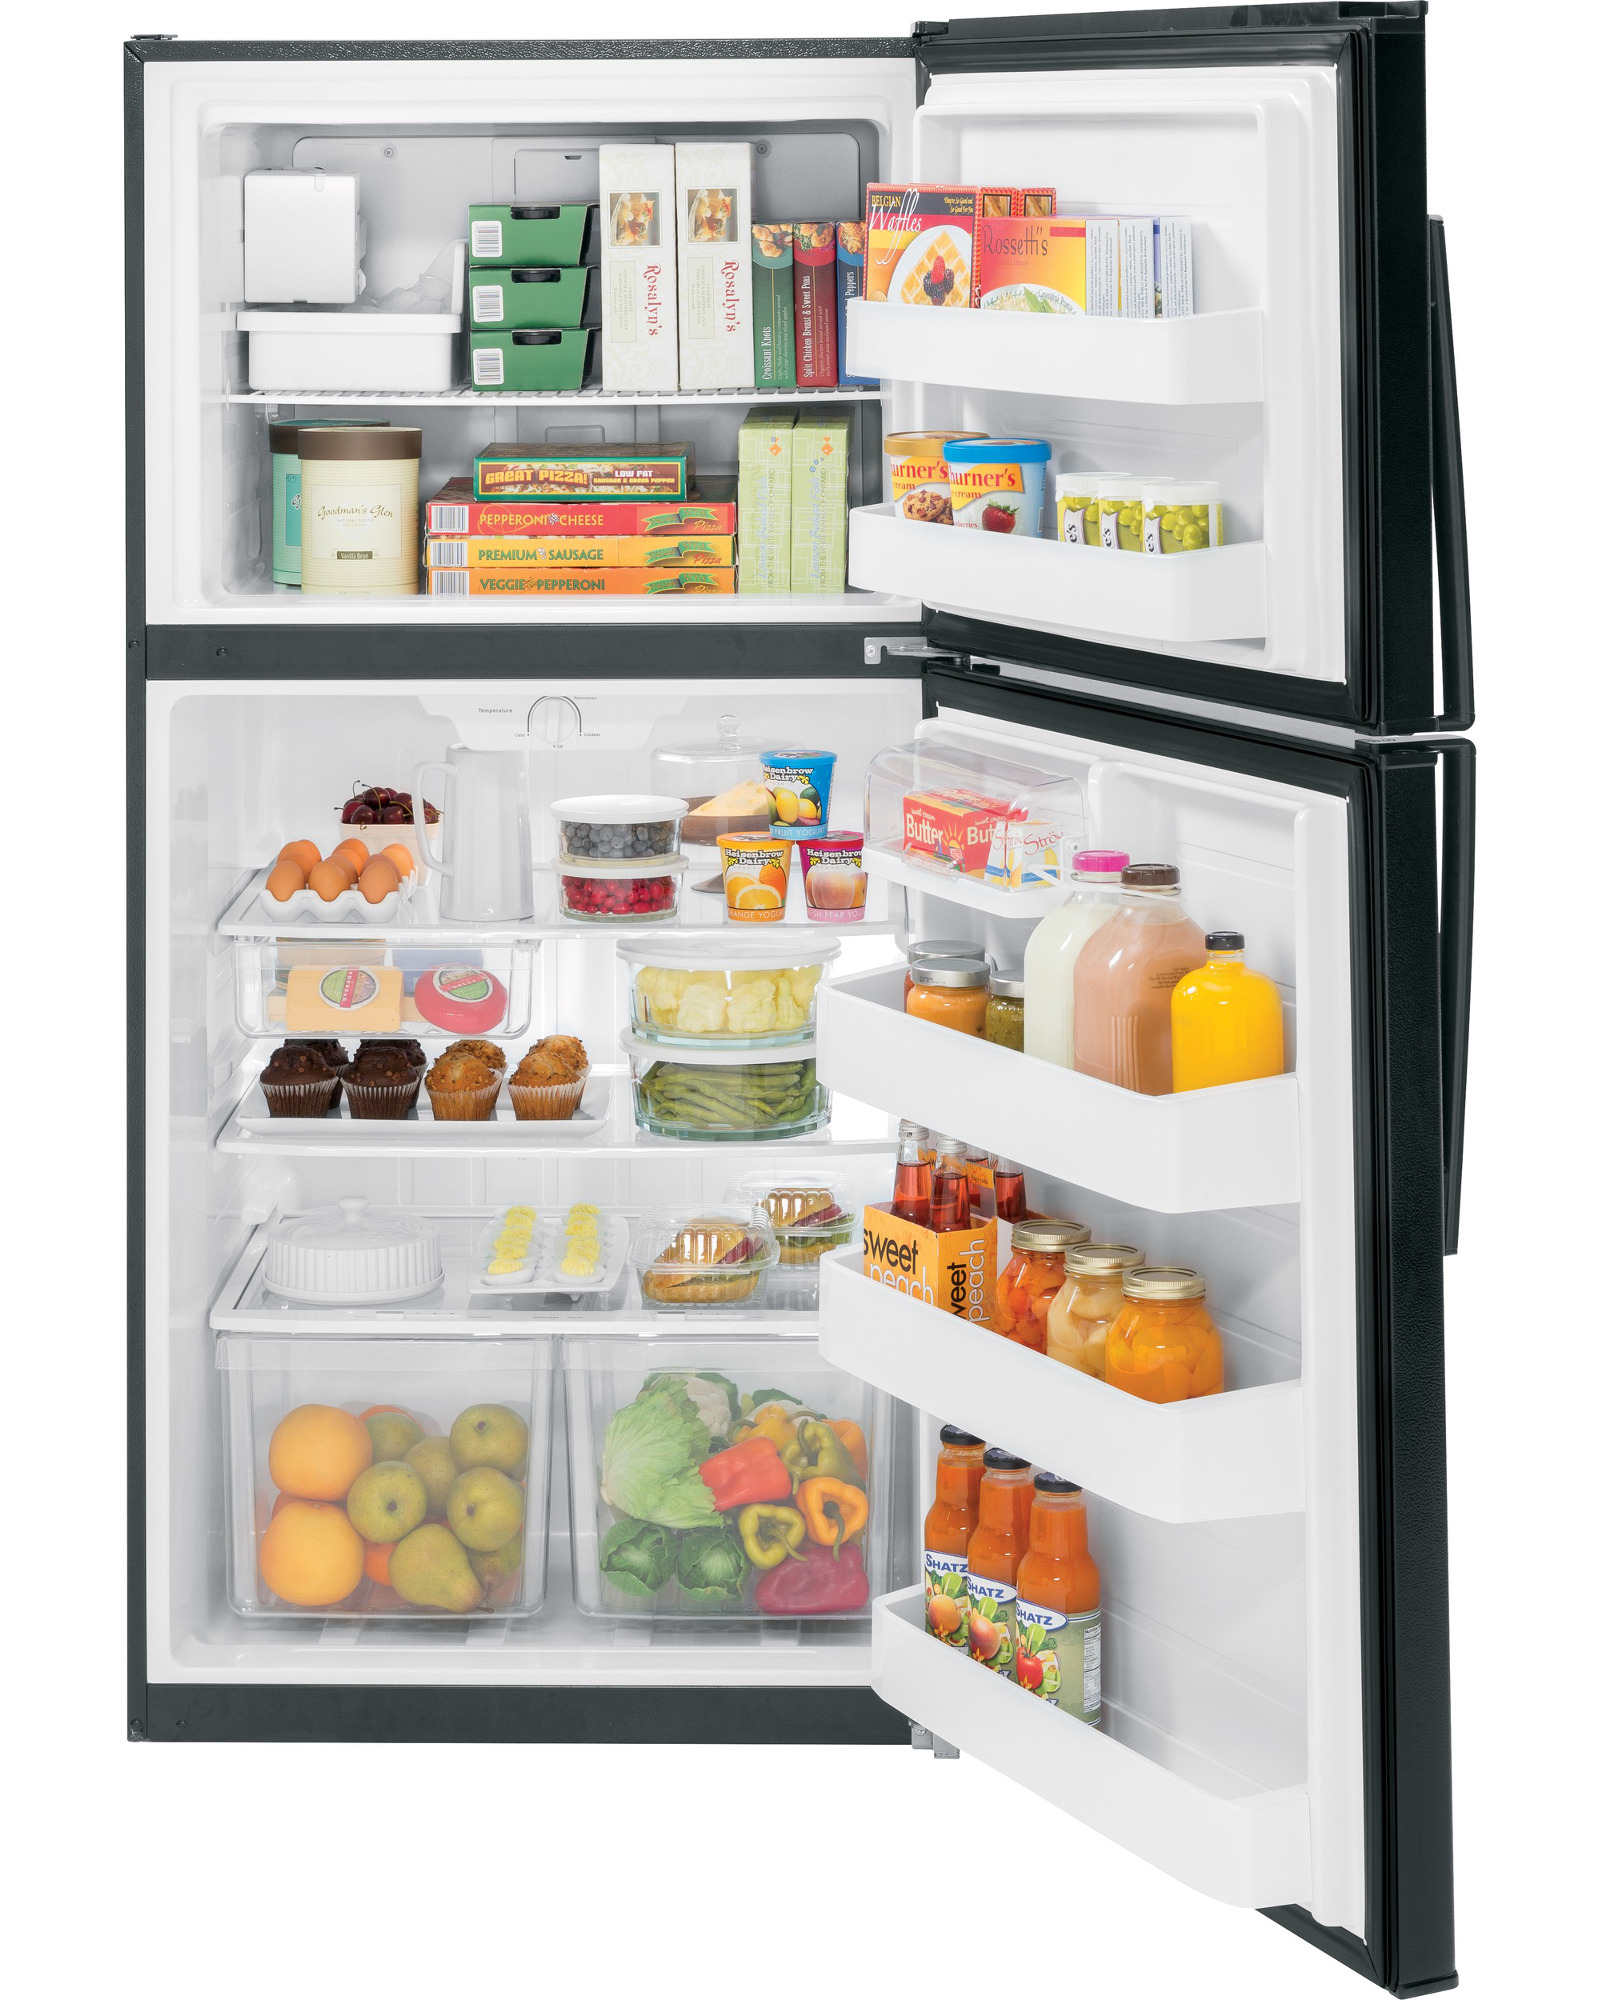 GE Appliances 21.2 cu. ft. Top-Freezer Refrigerator - Black